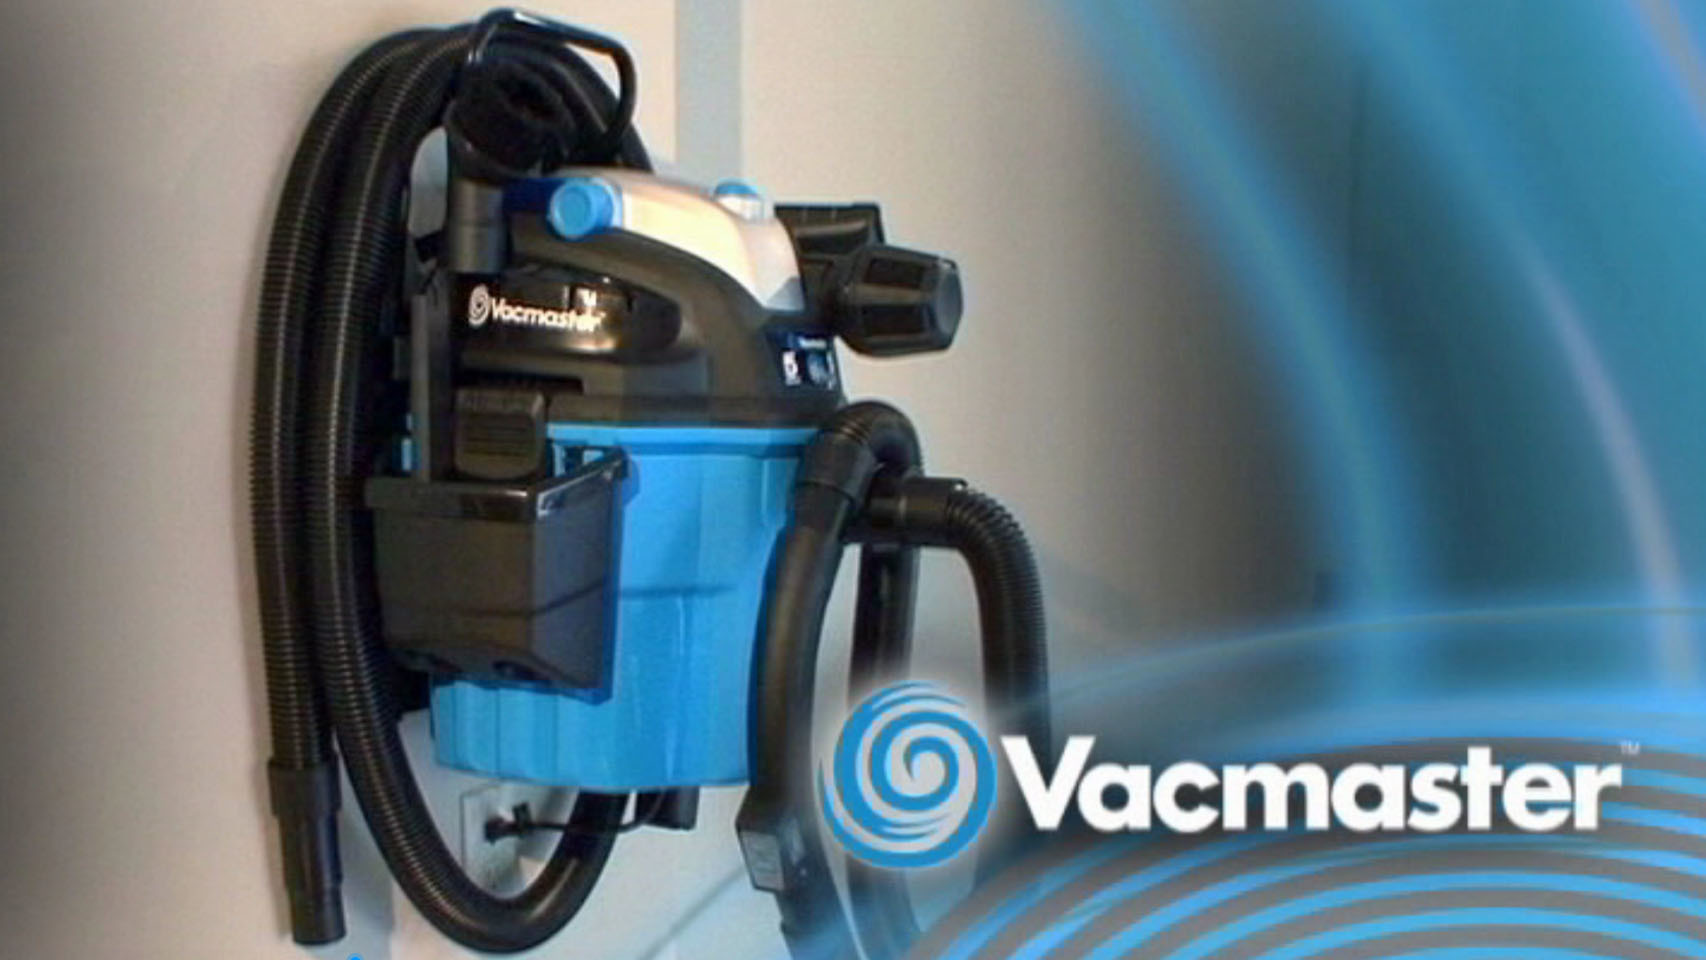 Vacmaster VWM510 Wall Mount Wet/Dry Vacuum with Remote Control, 5 Gallon, 5 Peak HP Video